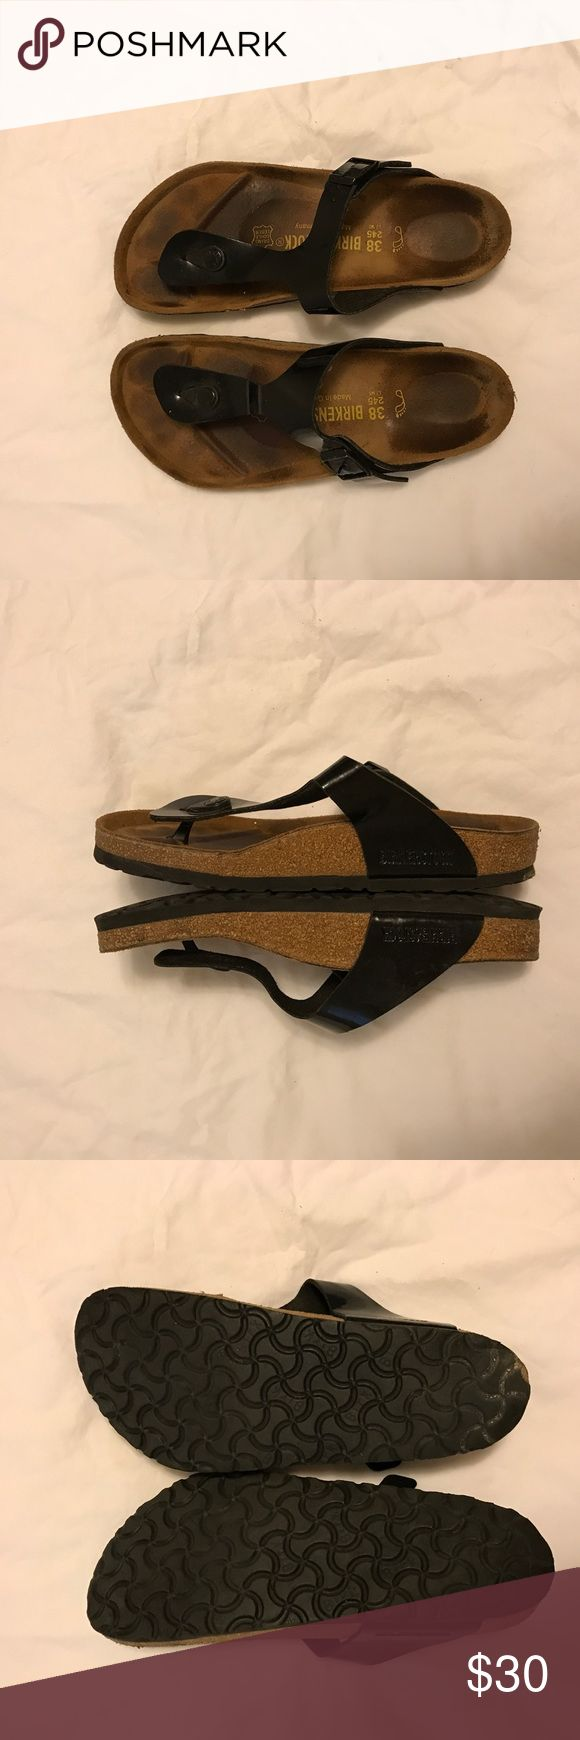 Birkenstock Gizeh Sandals - patent black sz 38 Lightly worn. No chips in the cork. Still lots of wear left! Birkenstock Shoes Sandals